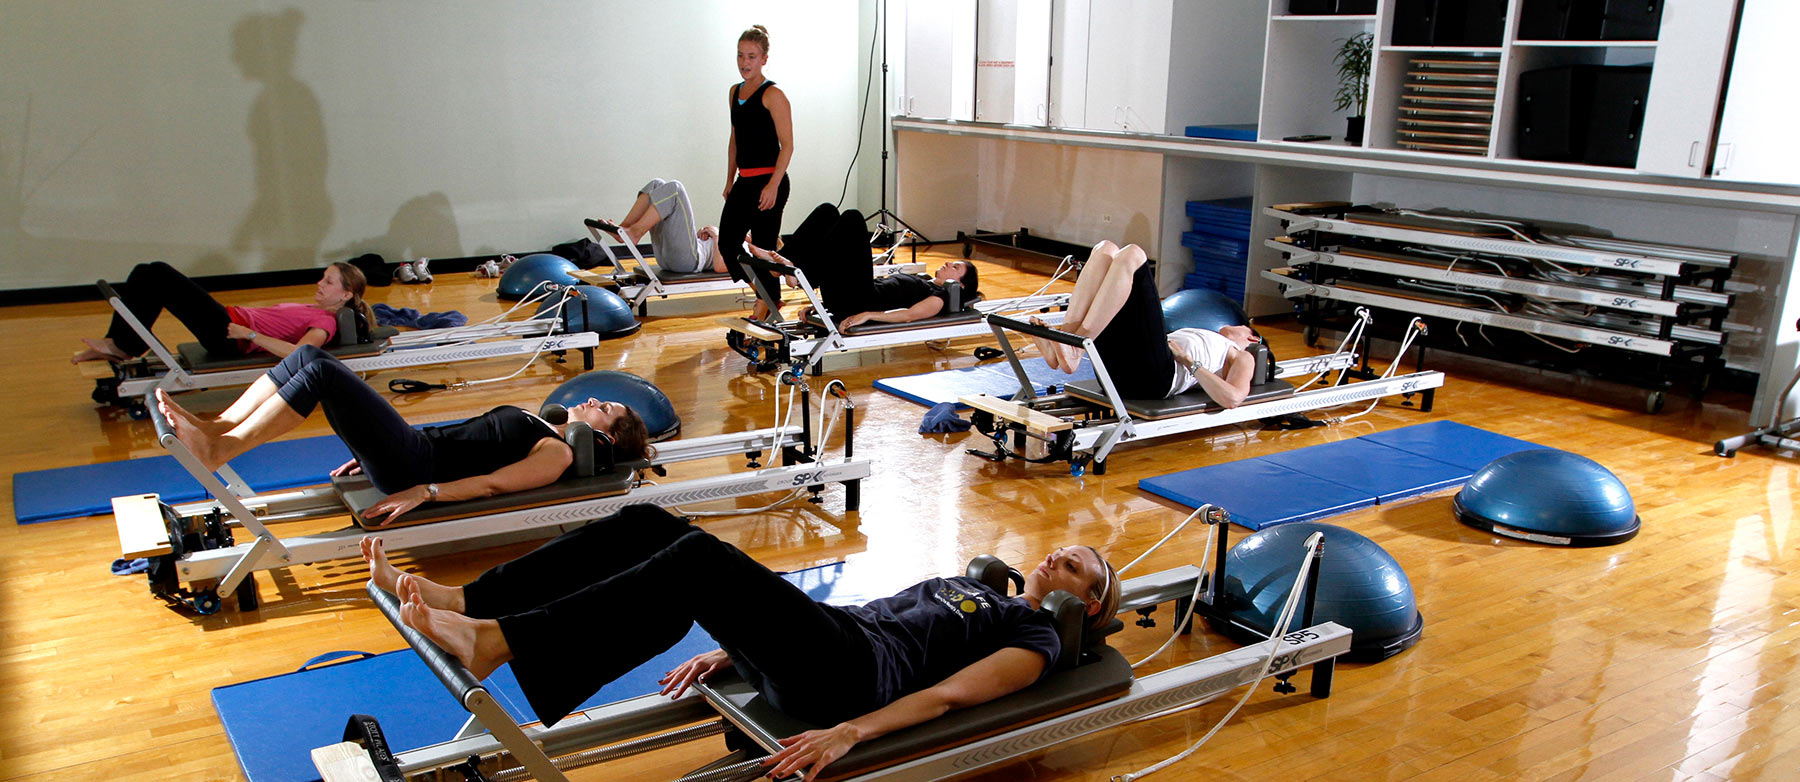 Pilates equipment reformer